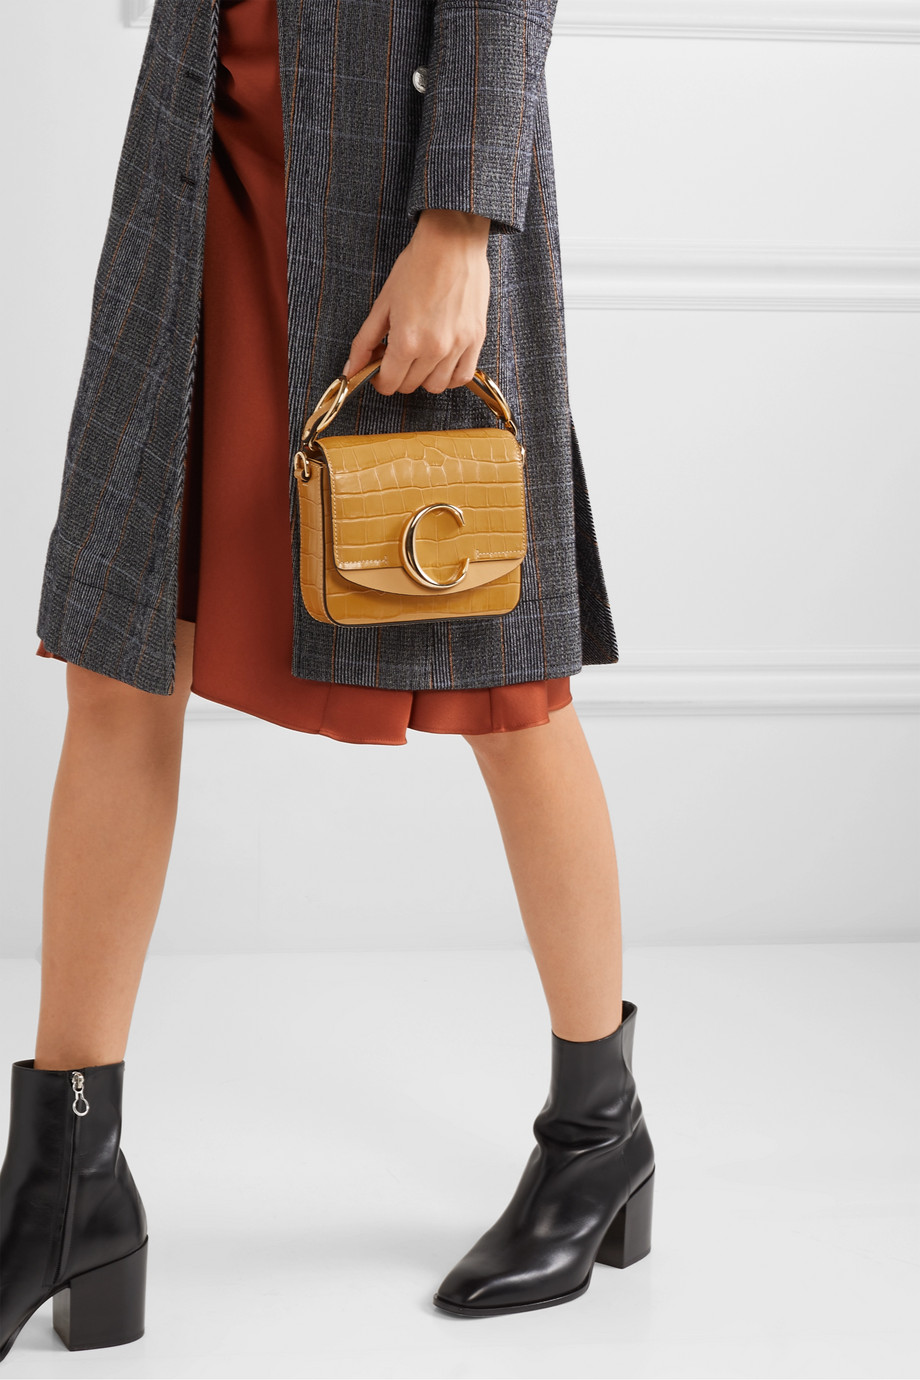 Chloé Chloé C mini smooth and croc-effect leather shoulder bag